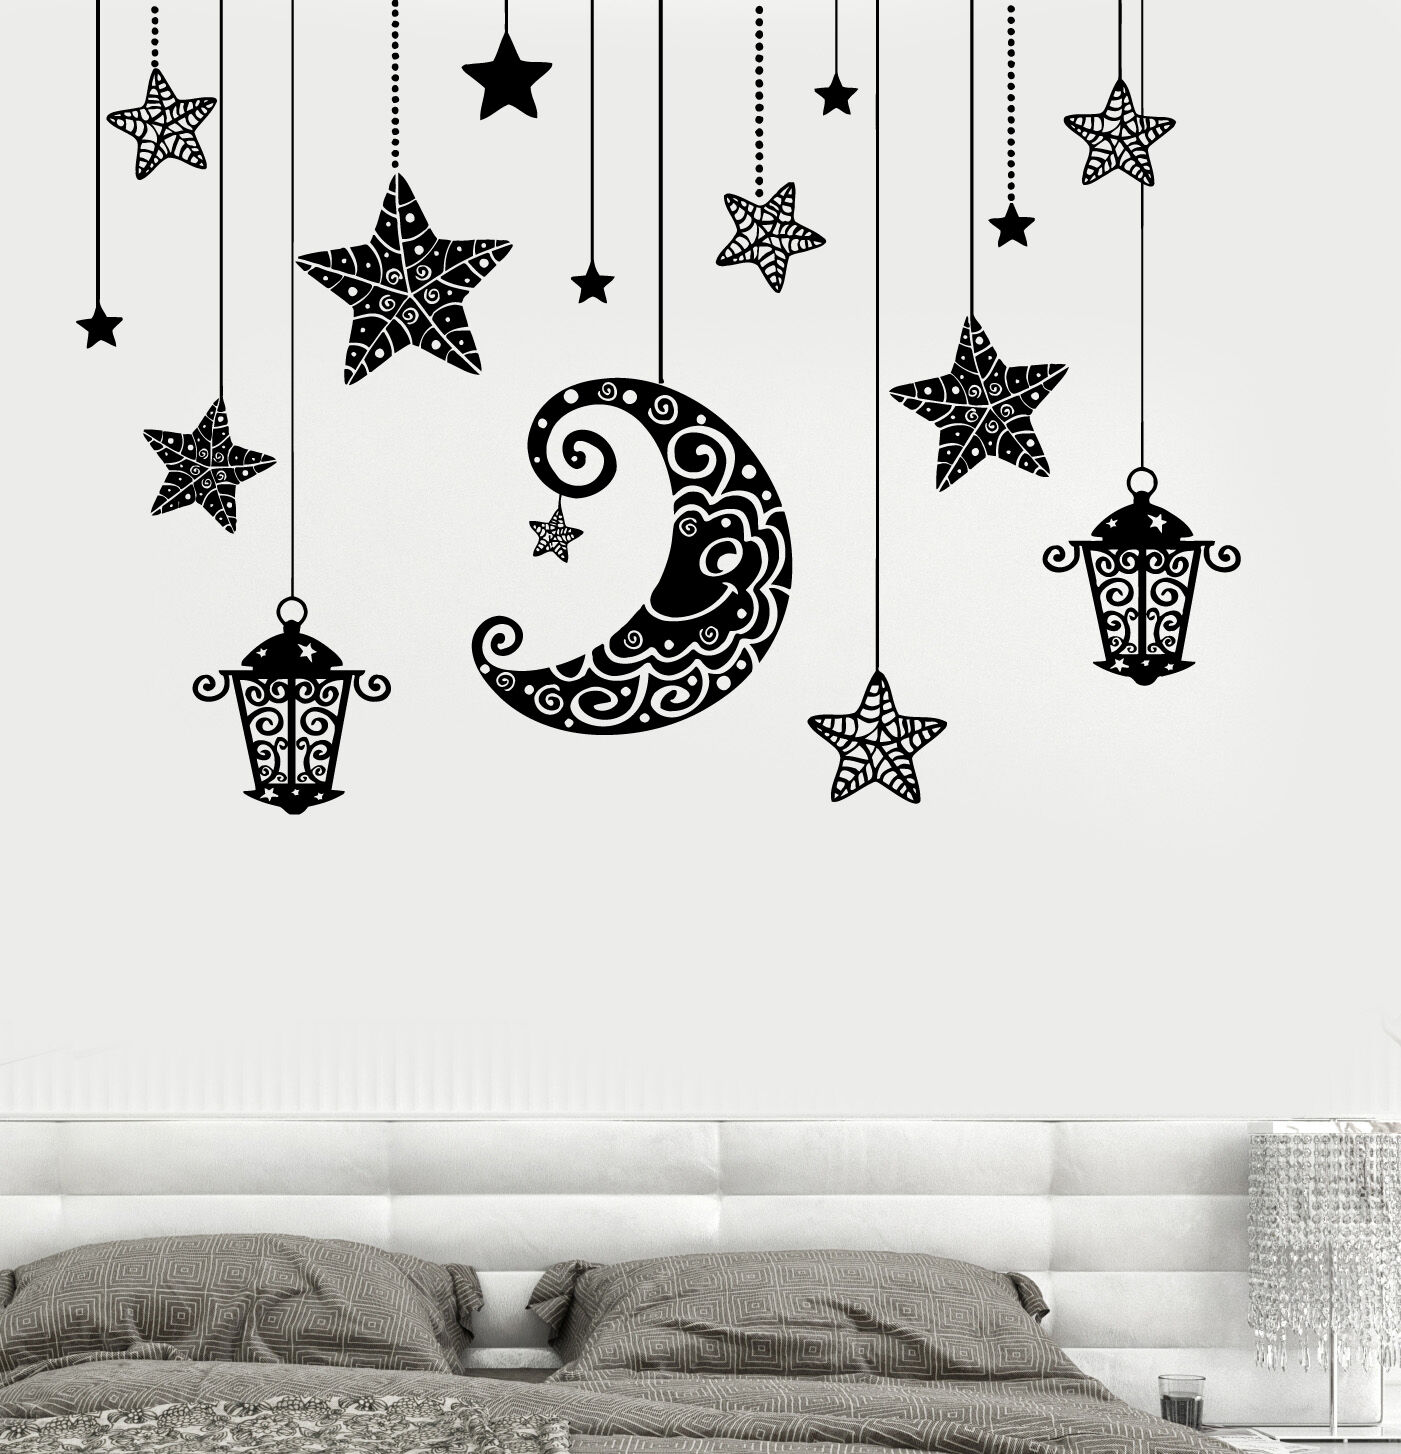 Wand Decal Moon Stars Light Romanic Mural For Bettroom Vinyl Decal (z3190)